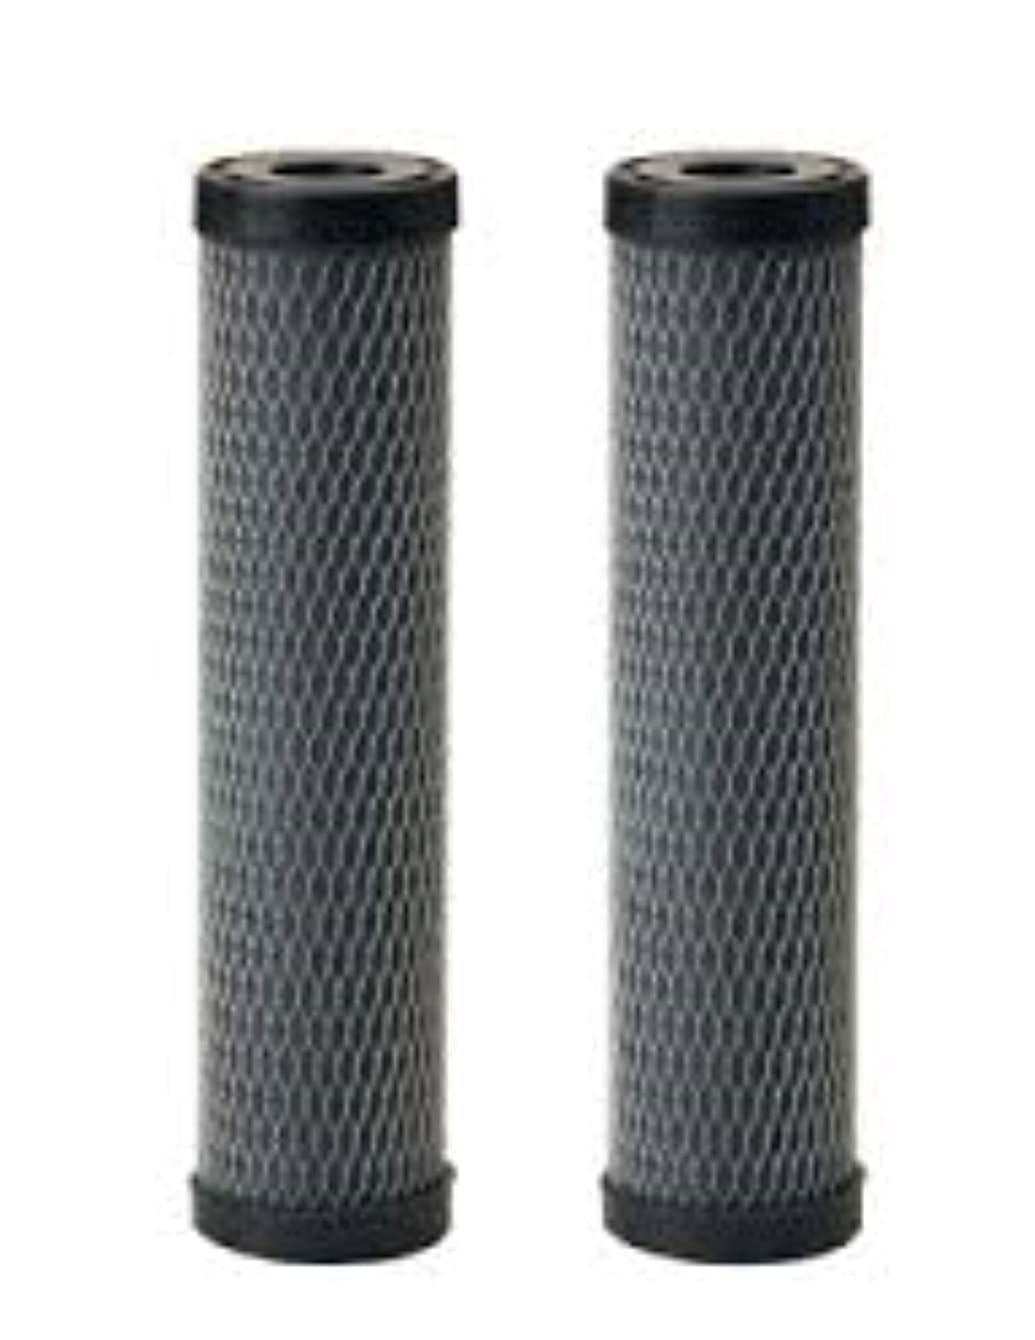 Omnifilter T01-DS Omni TO1-DS Whole House Replacement Under Sink Water Filter Carbon Wrapped Cartridge (2-Pack) Taste & Odor TO1 DS T01 DS Series C (Twin Pack) Compatible Water Filter BY CFS